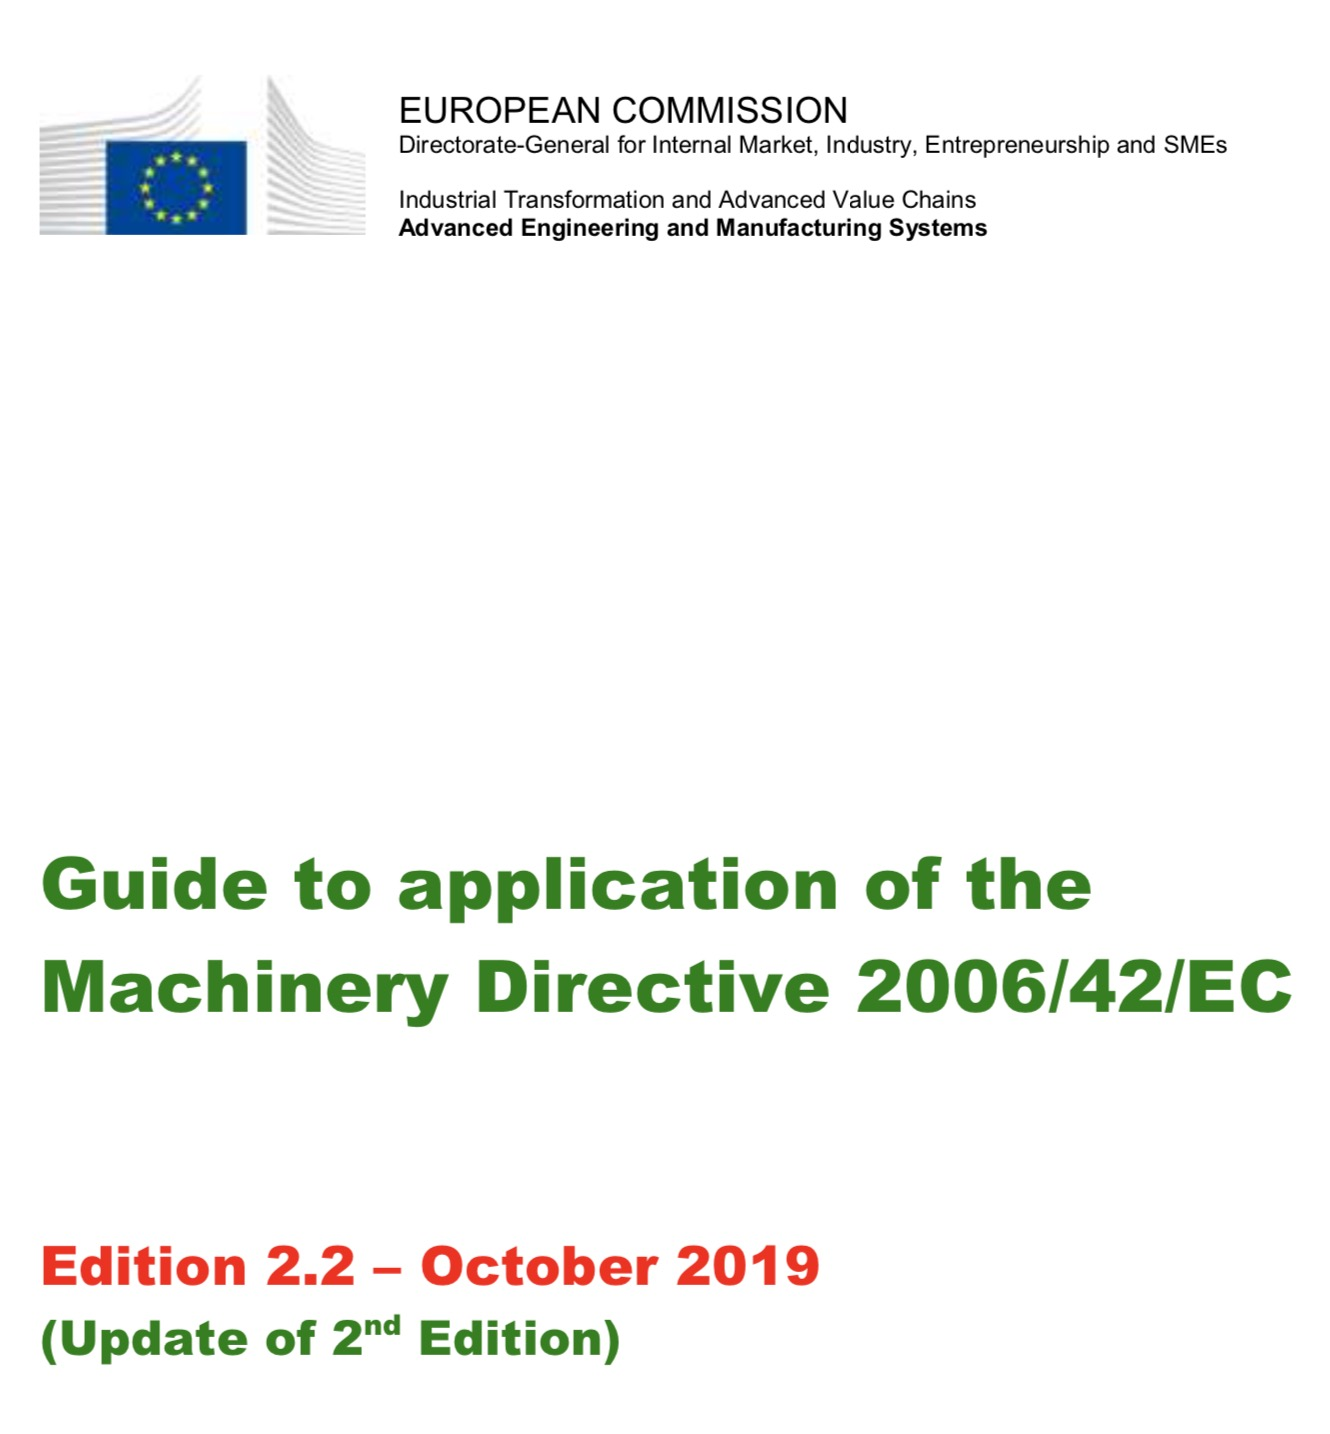 Guide to application of the Machinery Directive 2006/42/EC – Edition 2.2 – October 2019 – (Update of 2nd Edition)